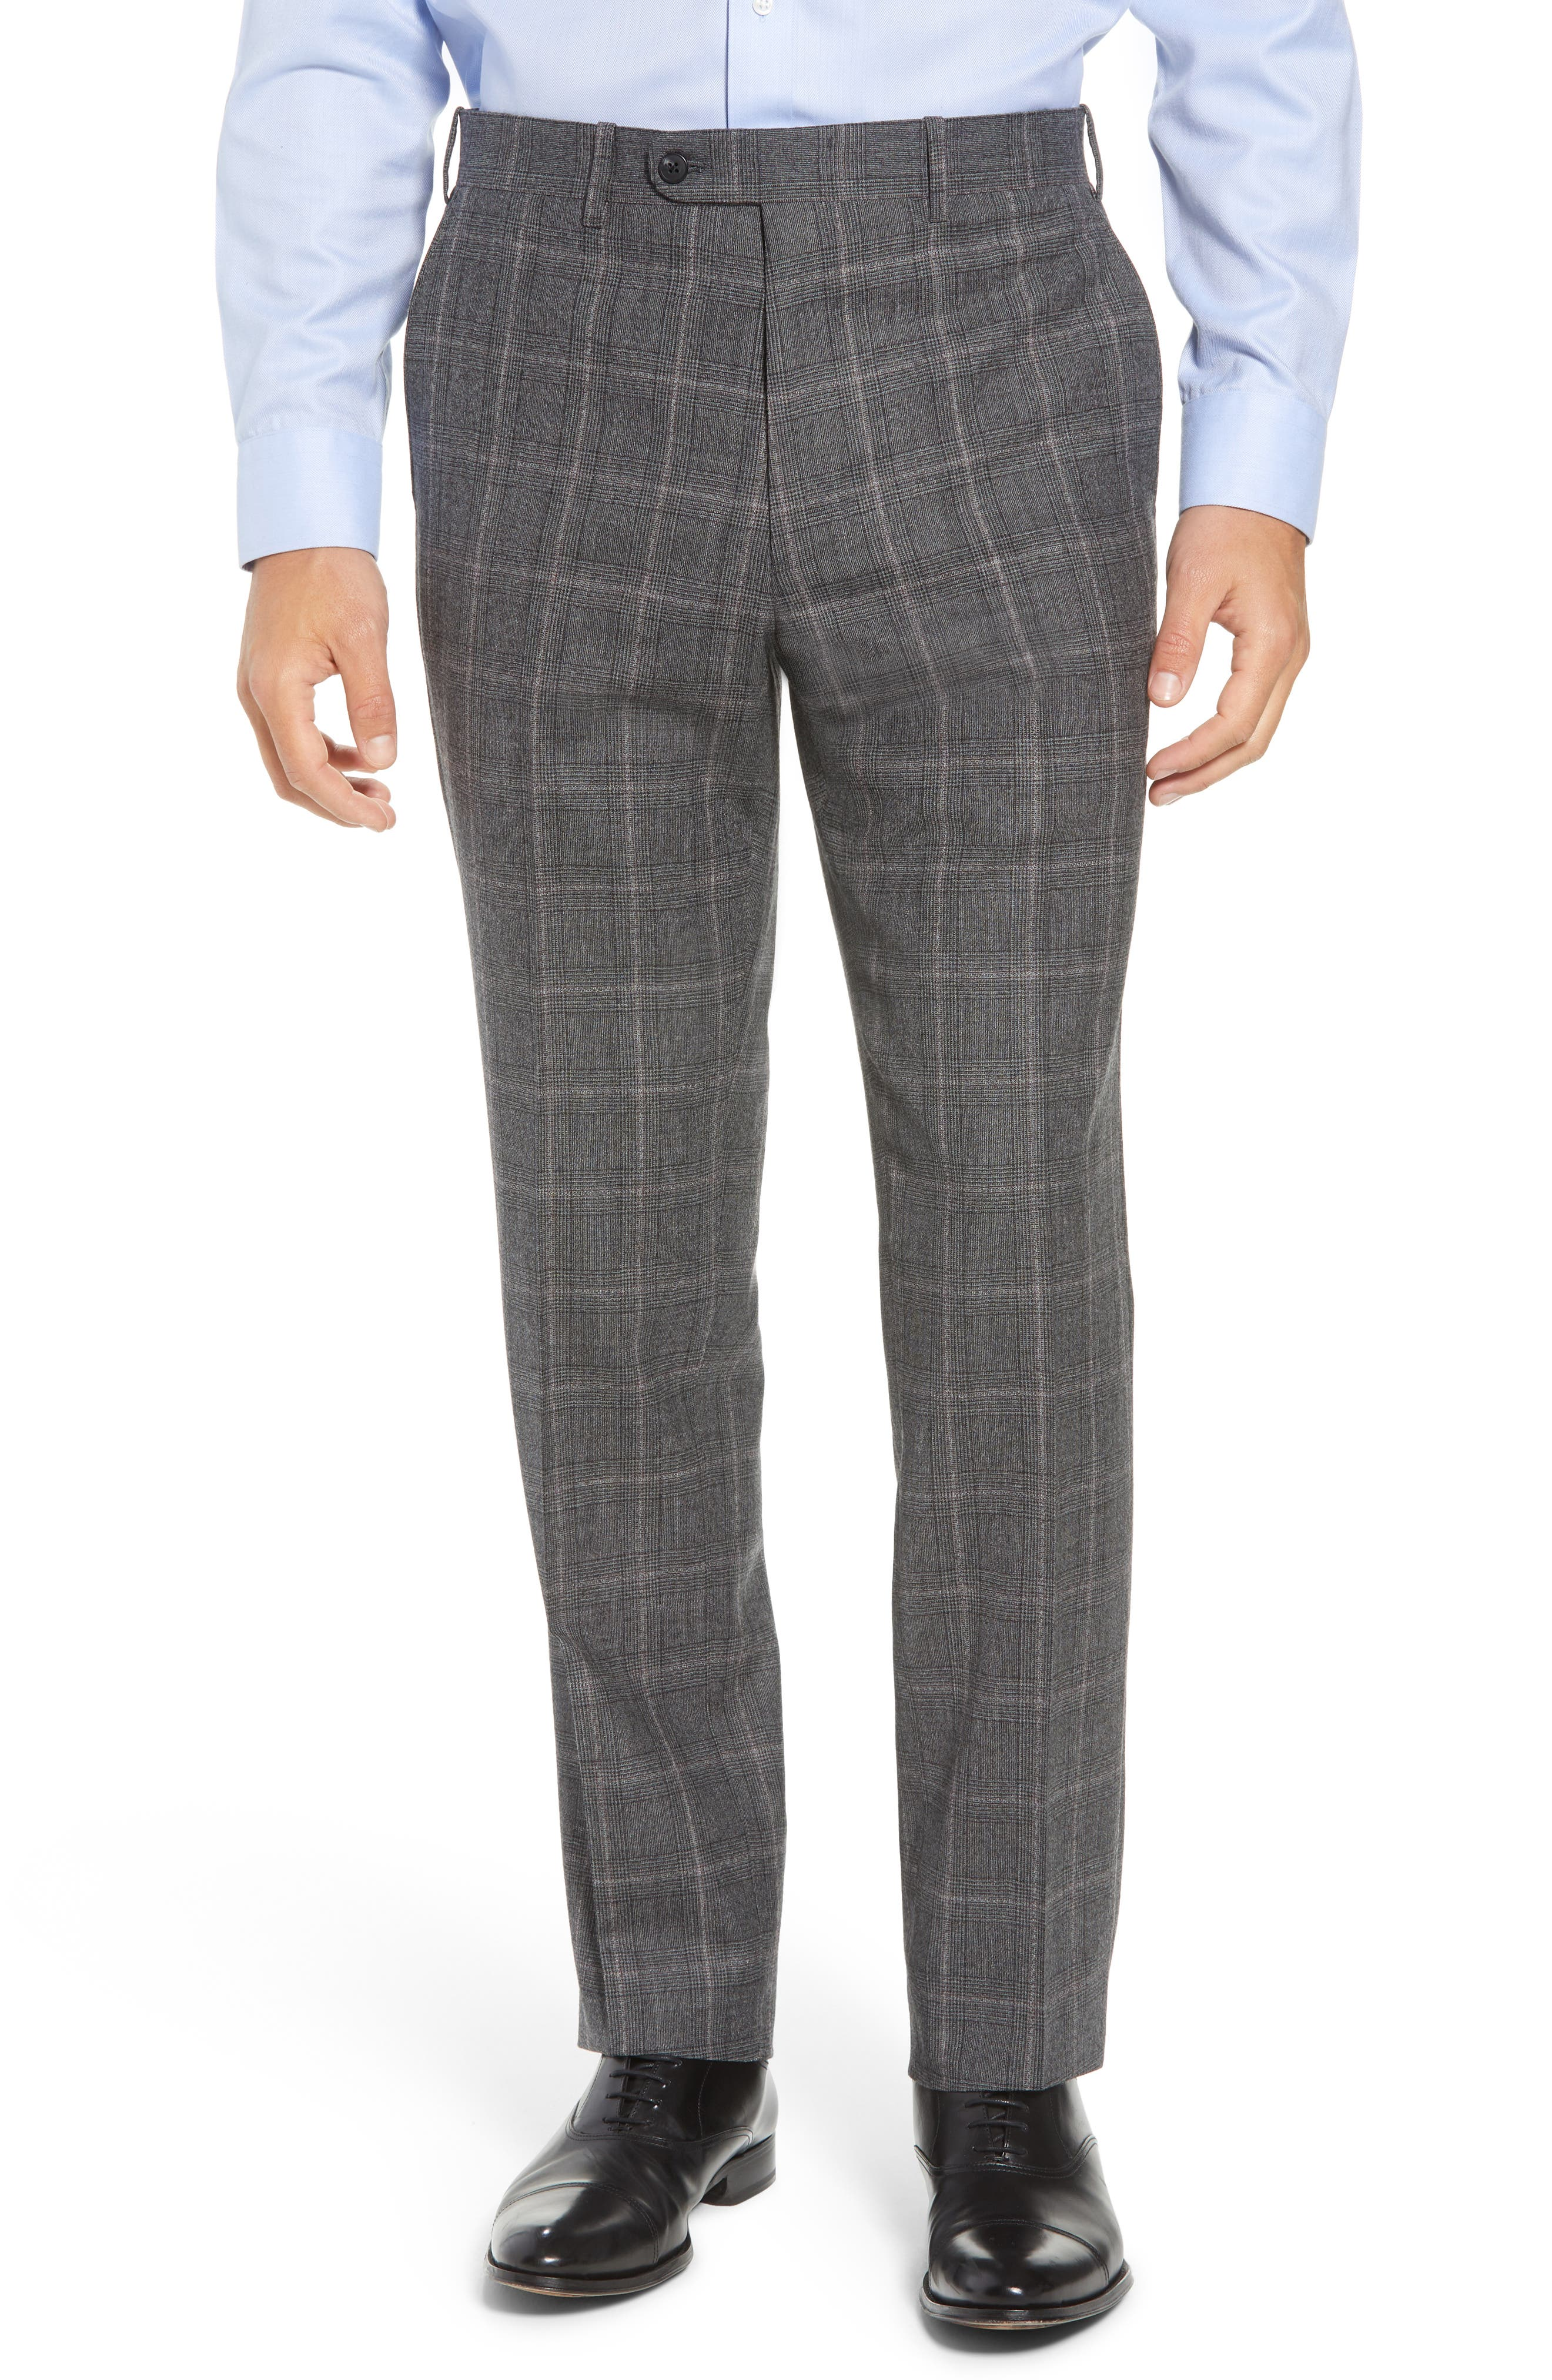 Torino Traditional Fit Flat Front Plaid Wool & Cashmere Trousers,                             Main thumbnail 1, color,                             GREY